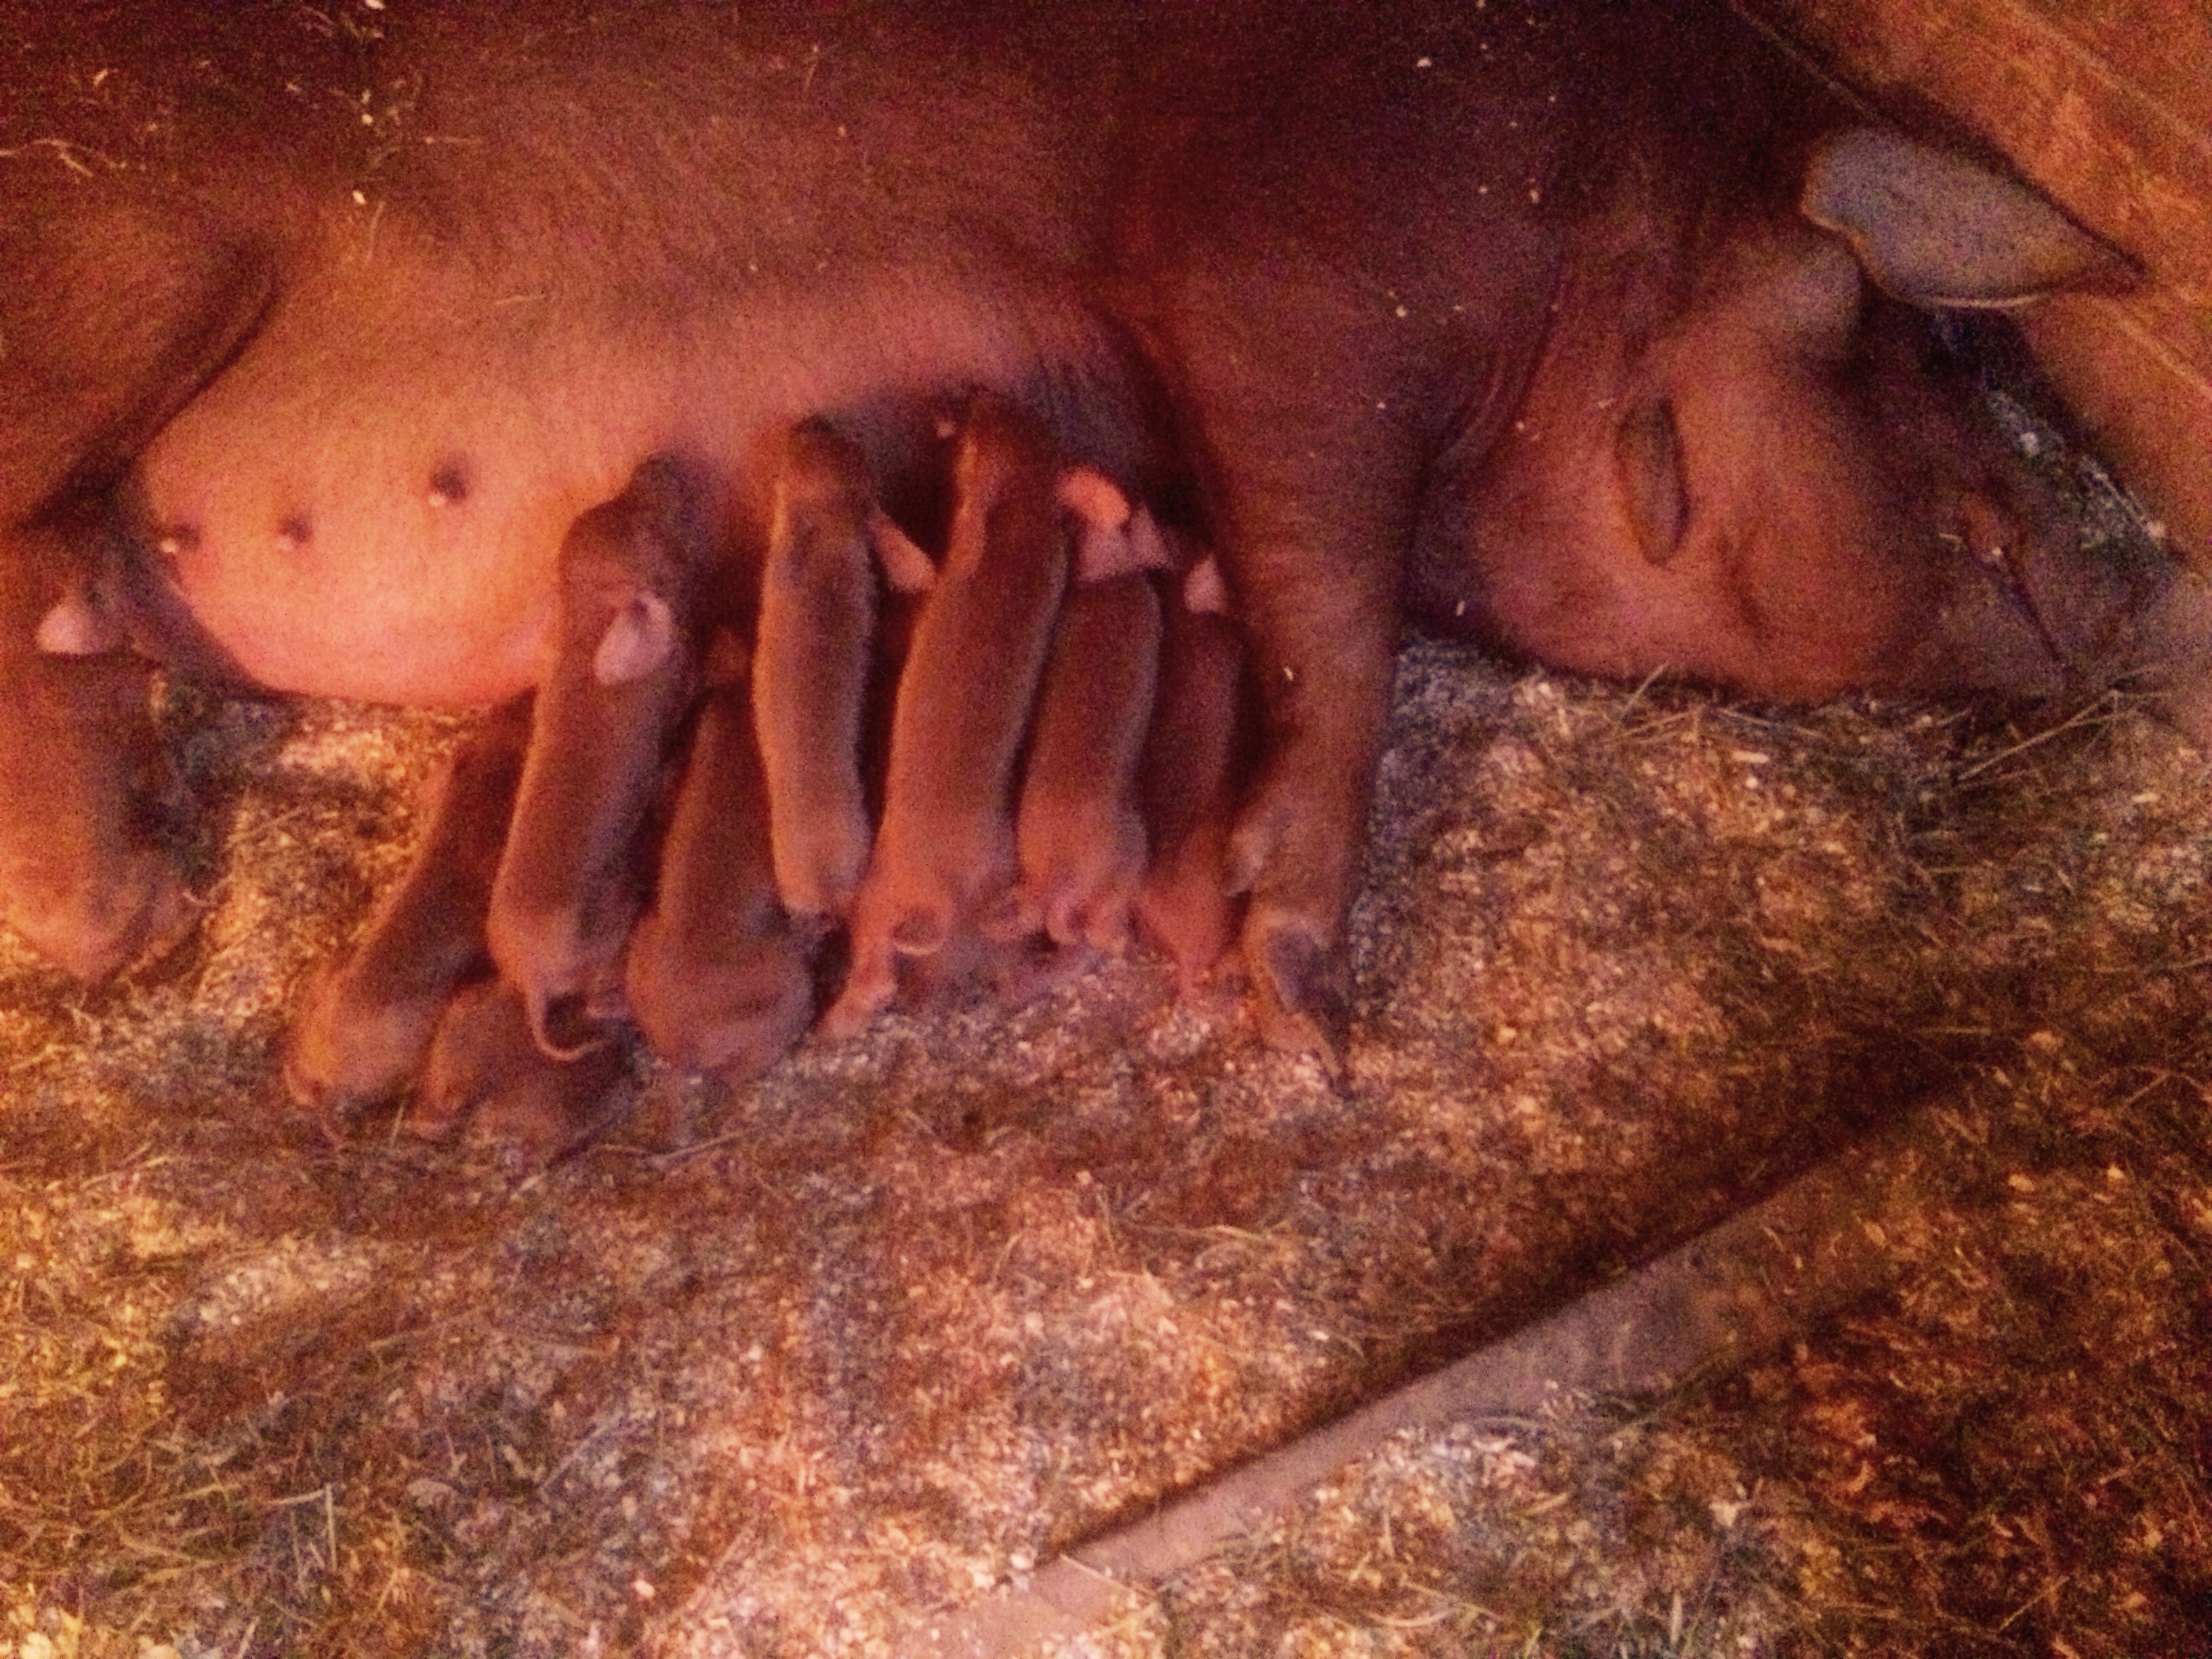 It was just a year ago we we were up every two hours bottle feeding Roxy now she is a mother of eleven piglets